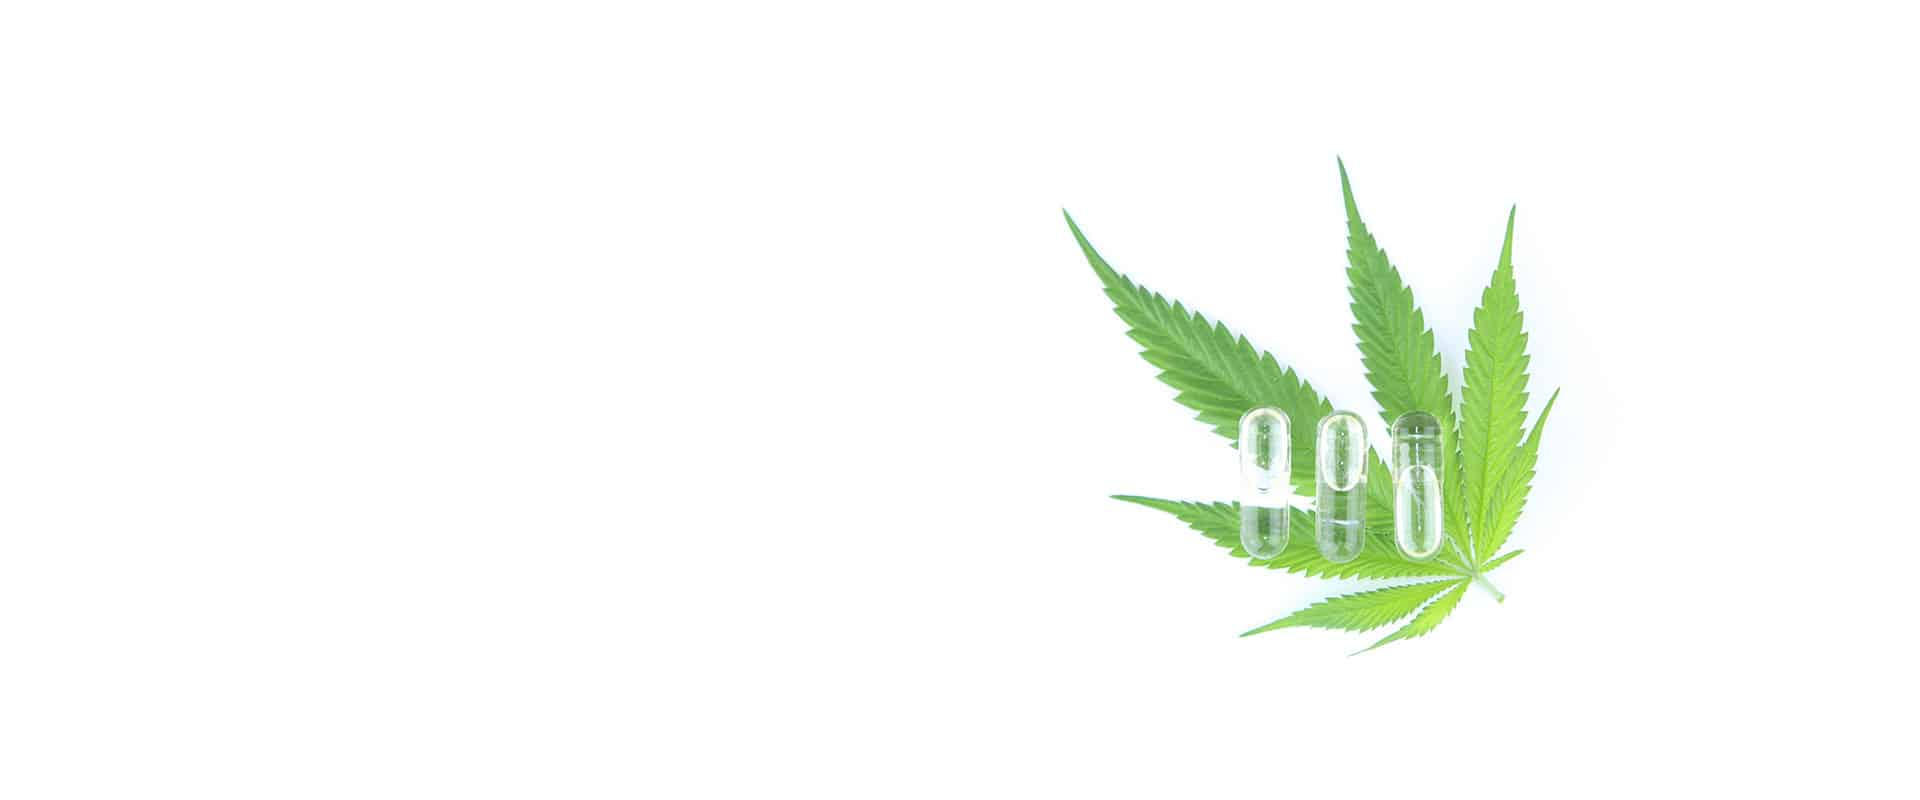 Infinite CBD Coupon Code - Online Discount - Save On Cannabis